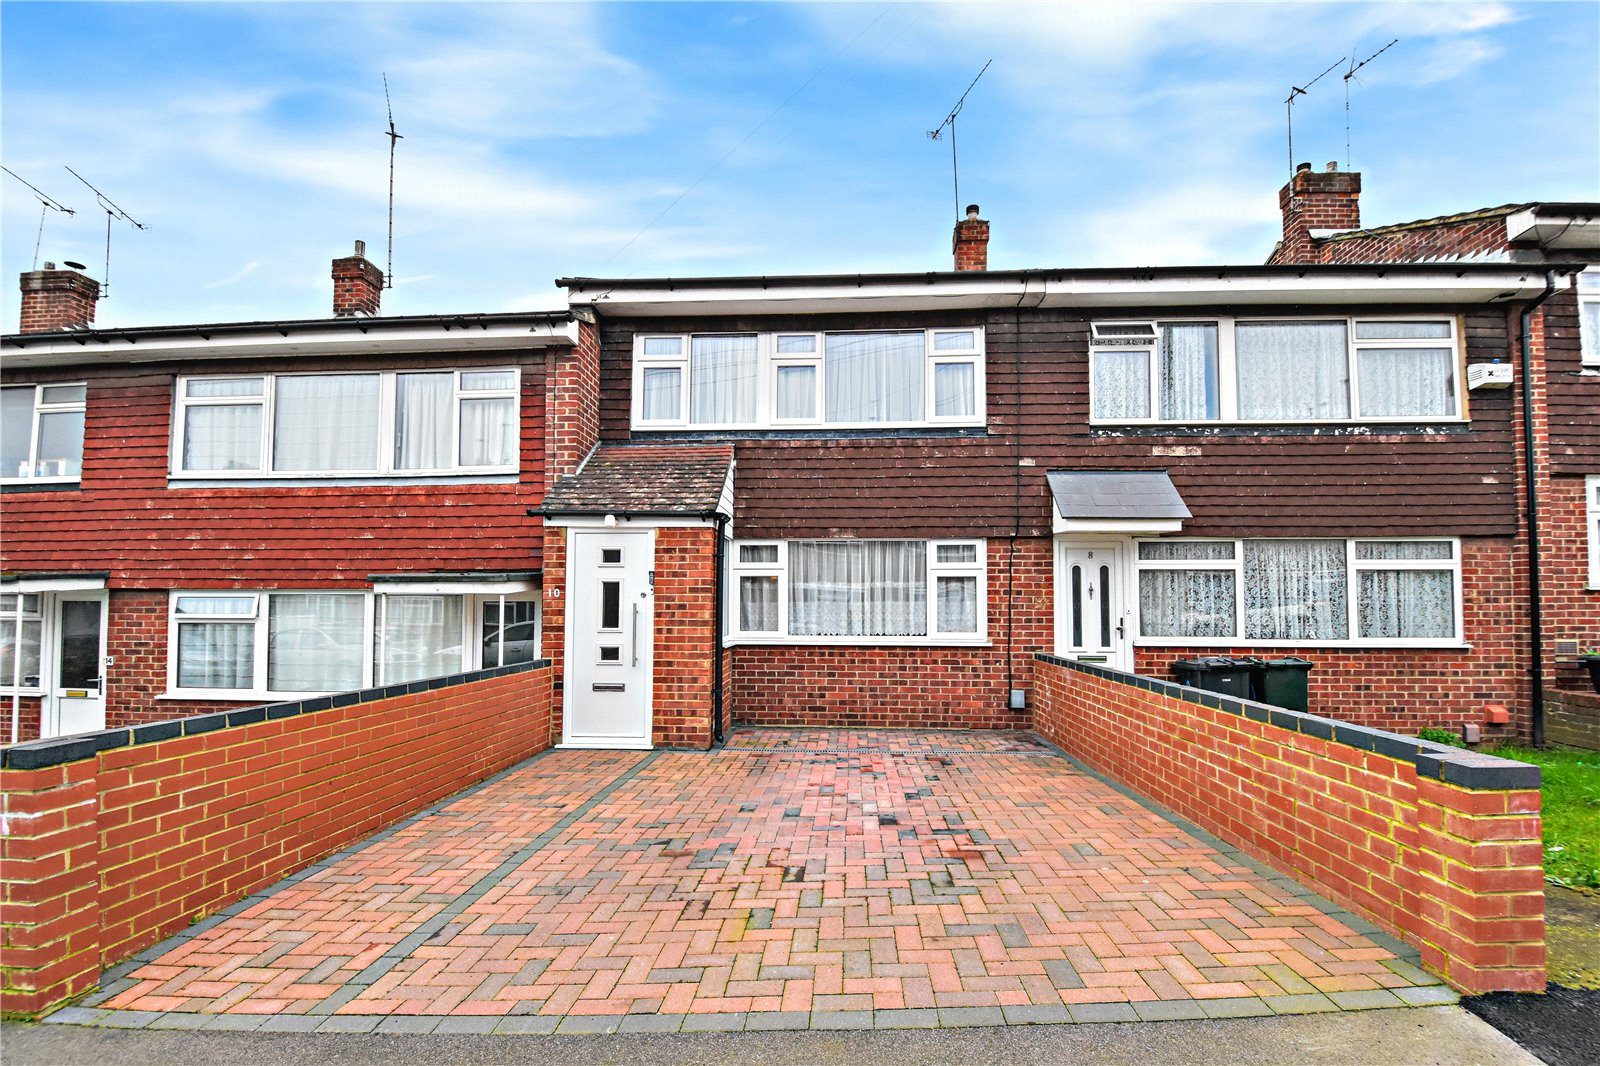 Dudsbury Road, Dartford, Kent, DA1